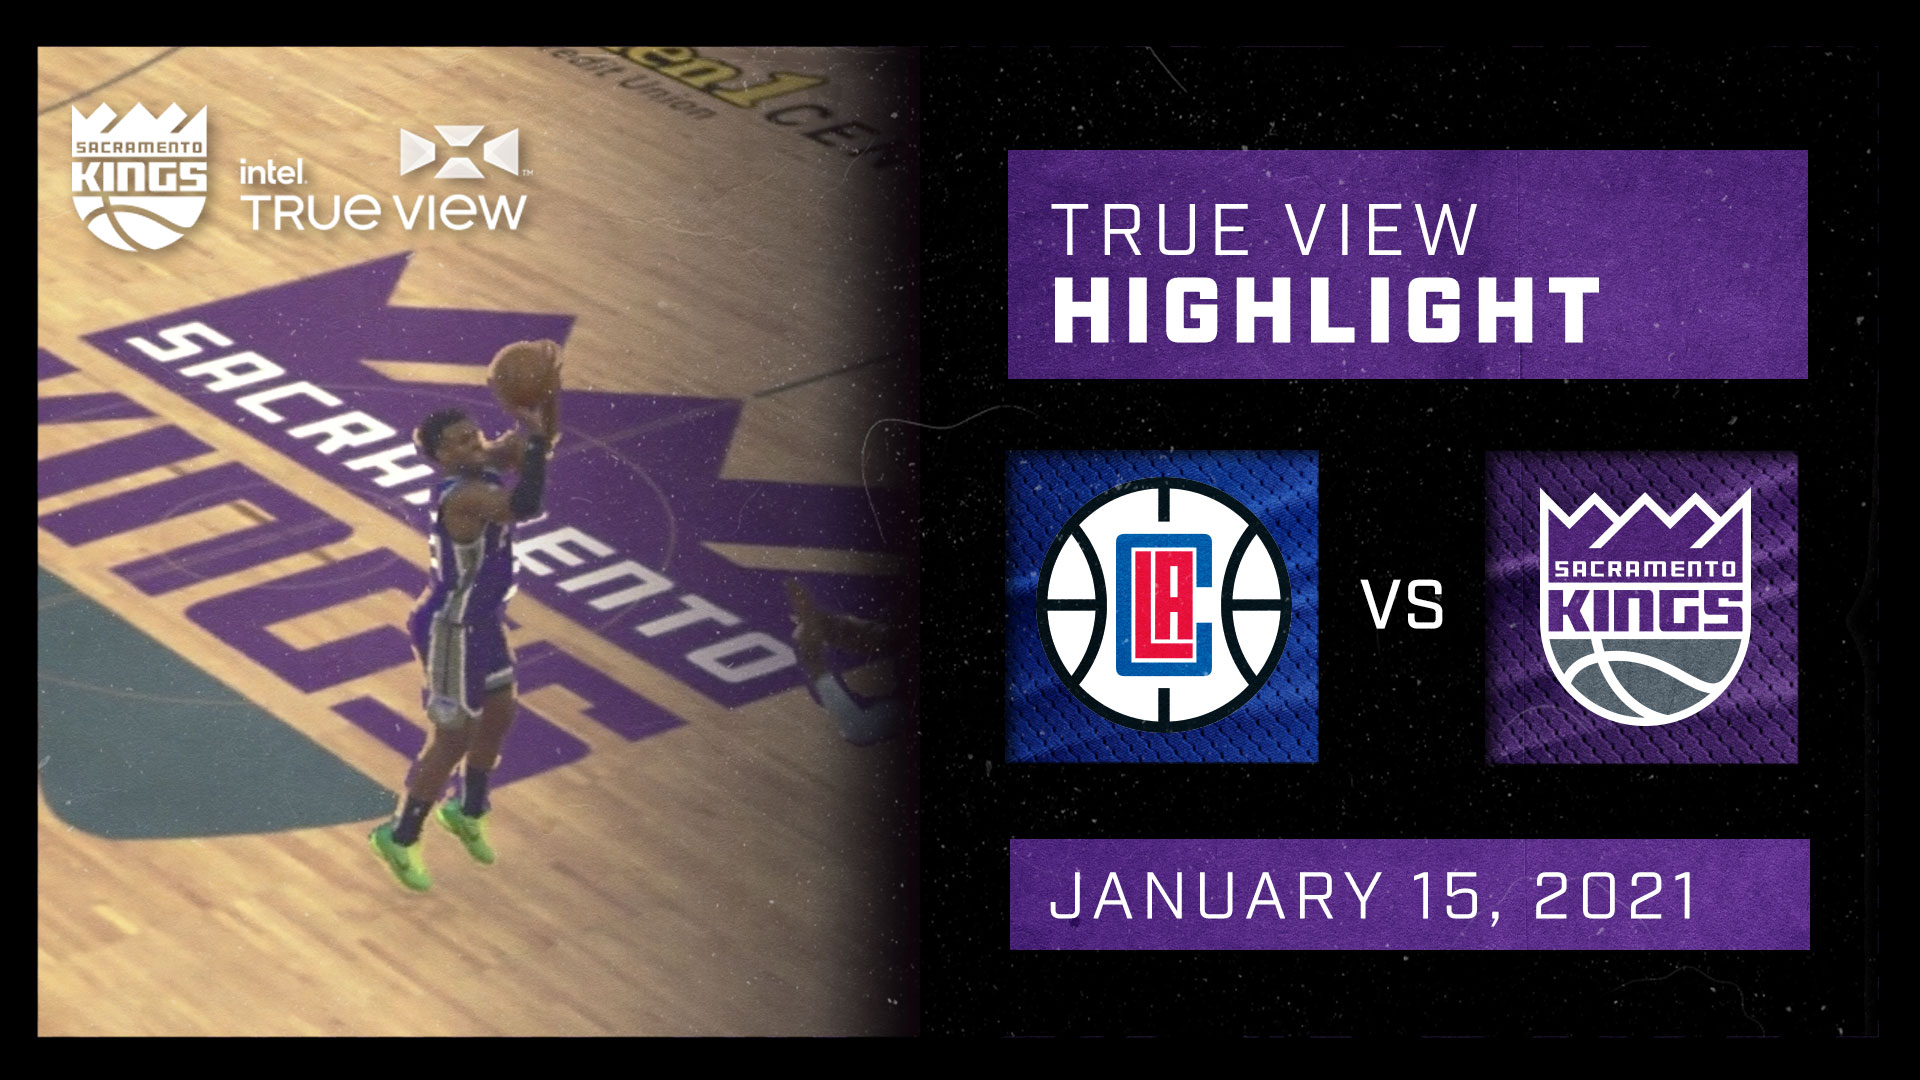 Intel True View Highlight - Hield 3-Pointer vs Clippers 1.15.21